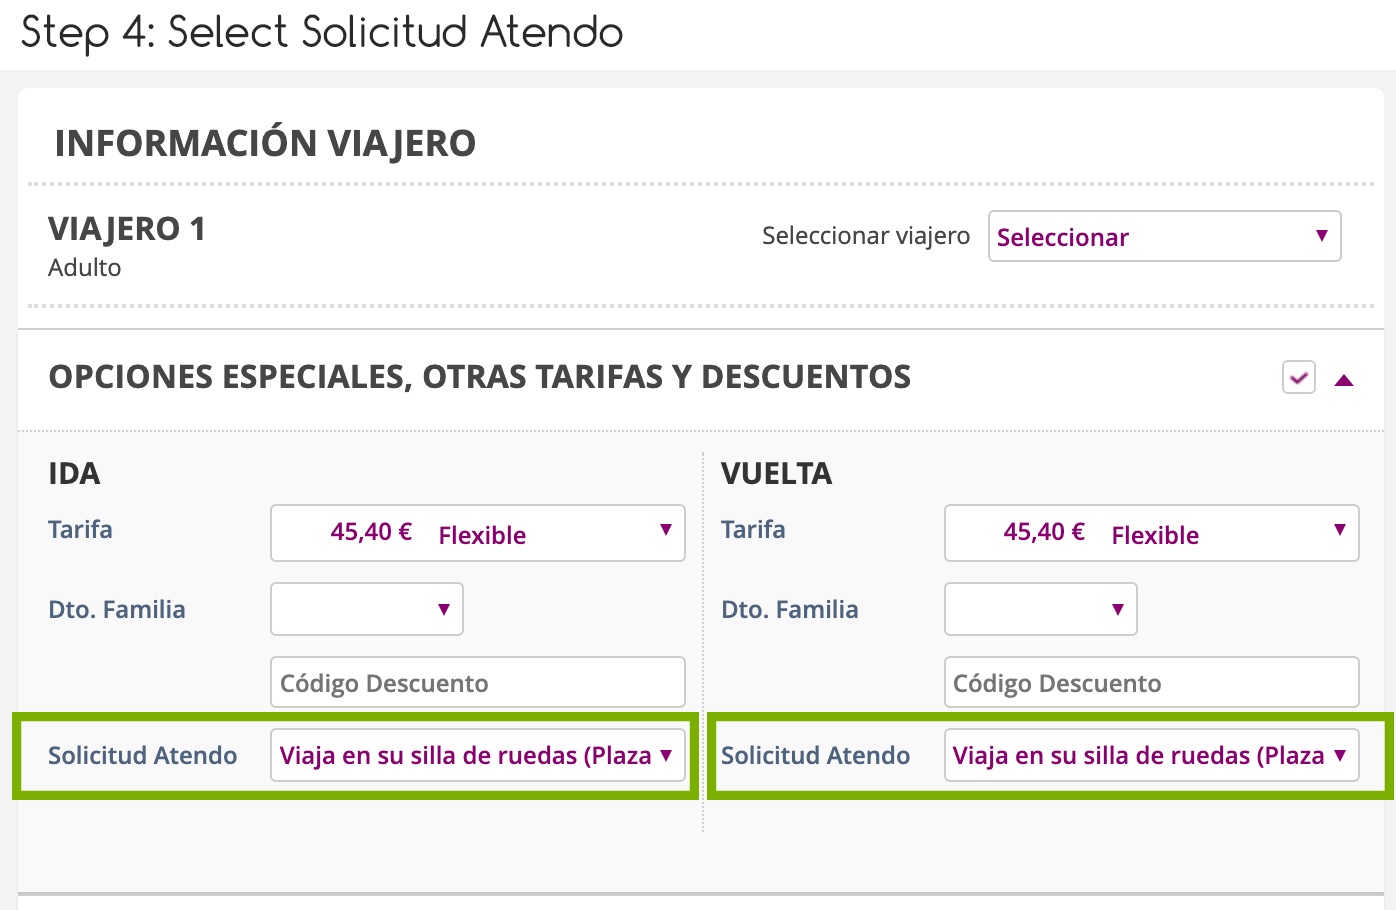 Step 4 buying your own Renfe Tickets